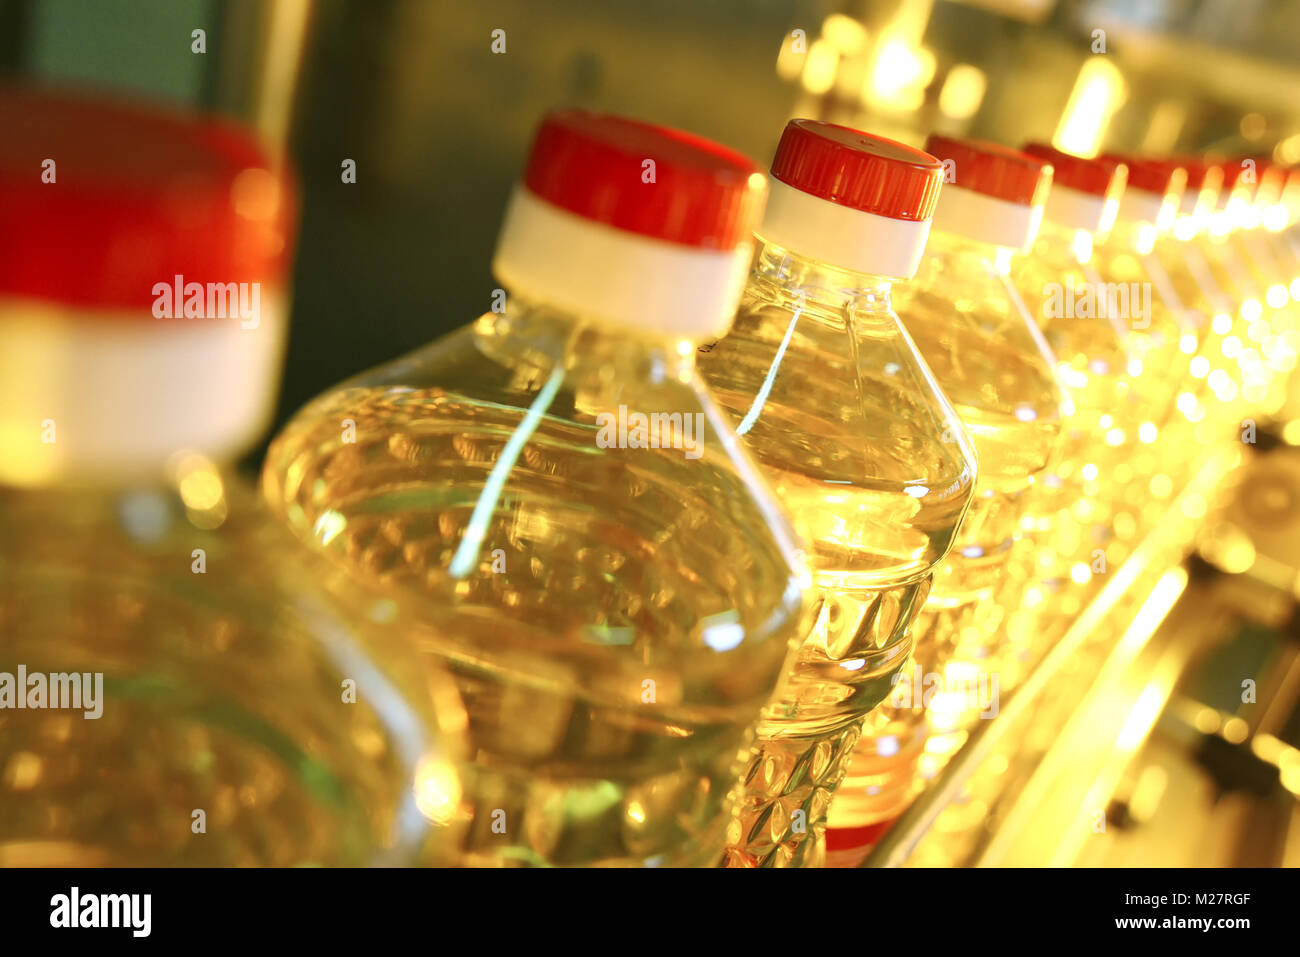 A factory for the production of sunflower oil. - Stock Image